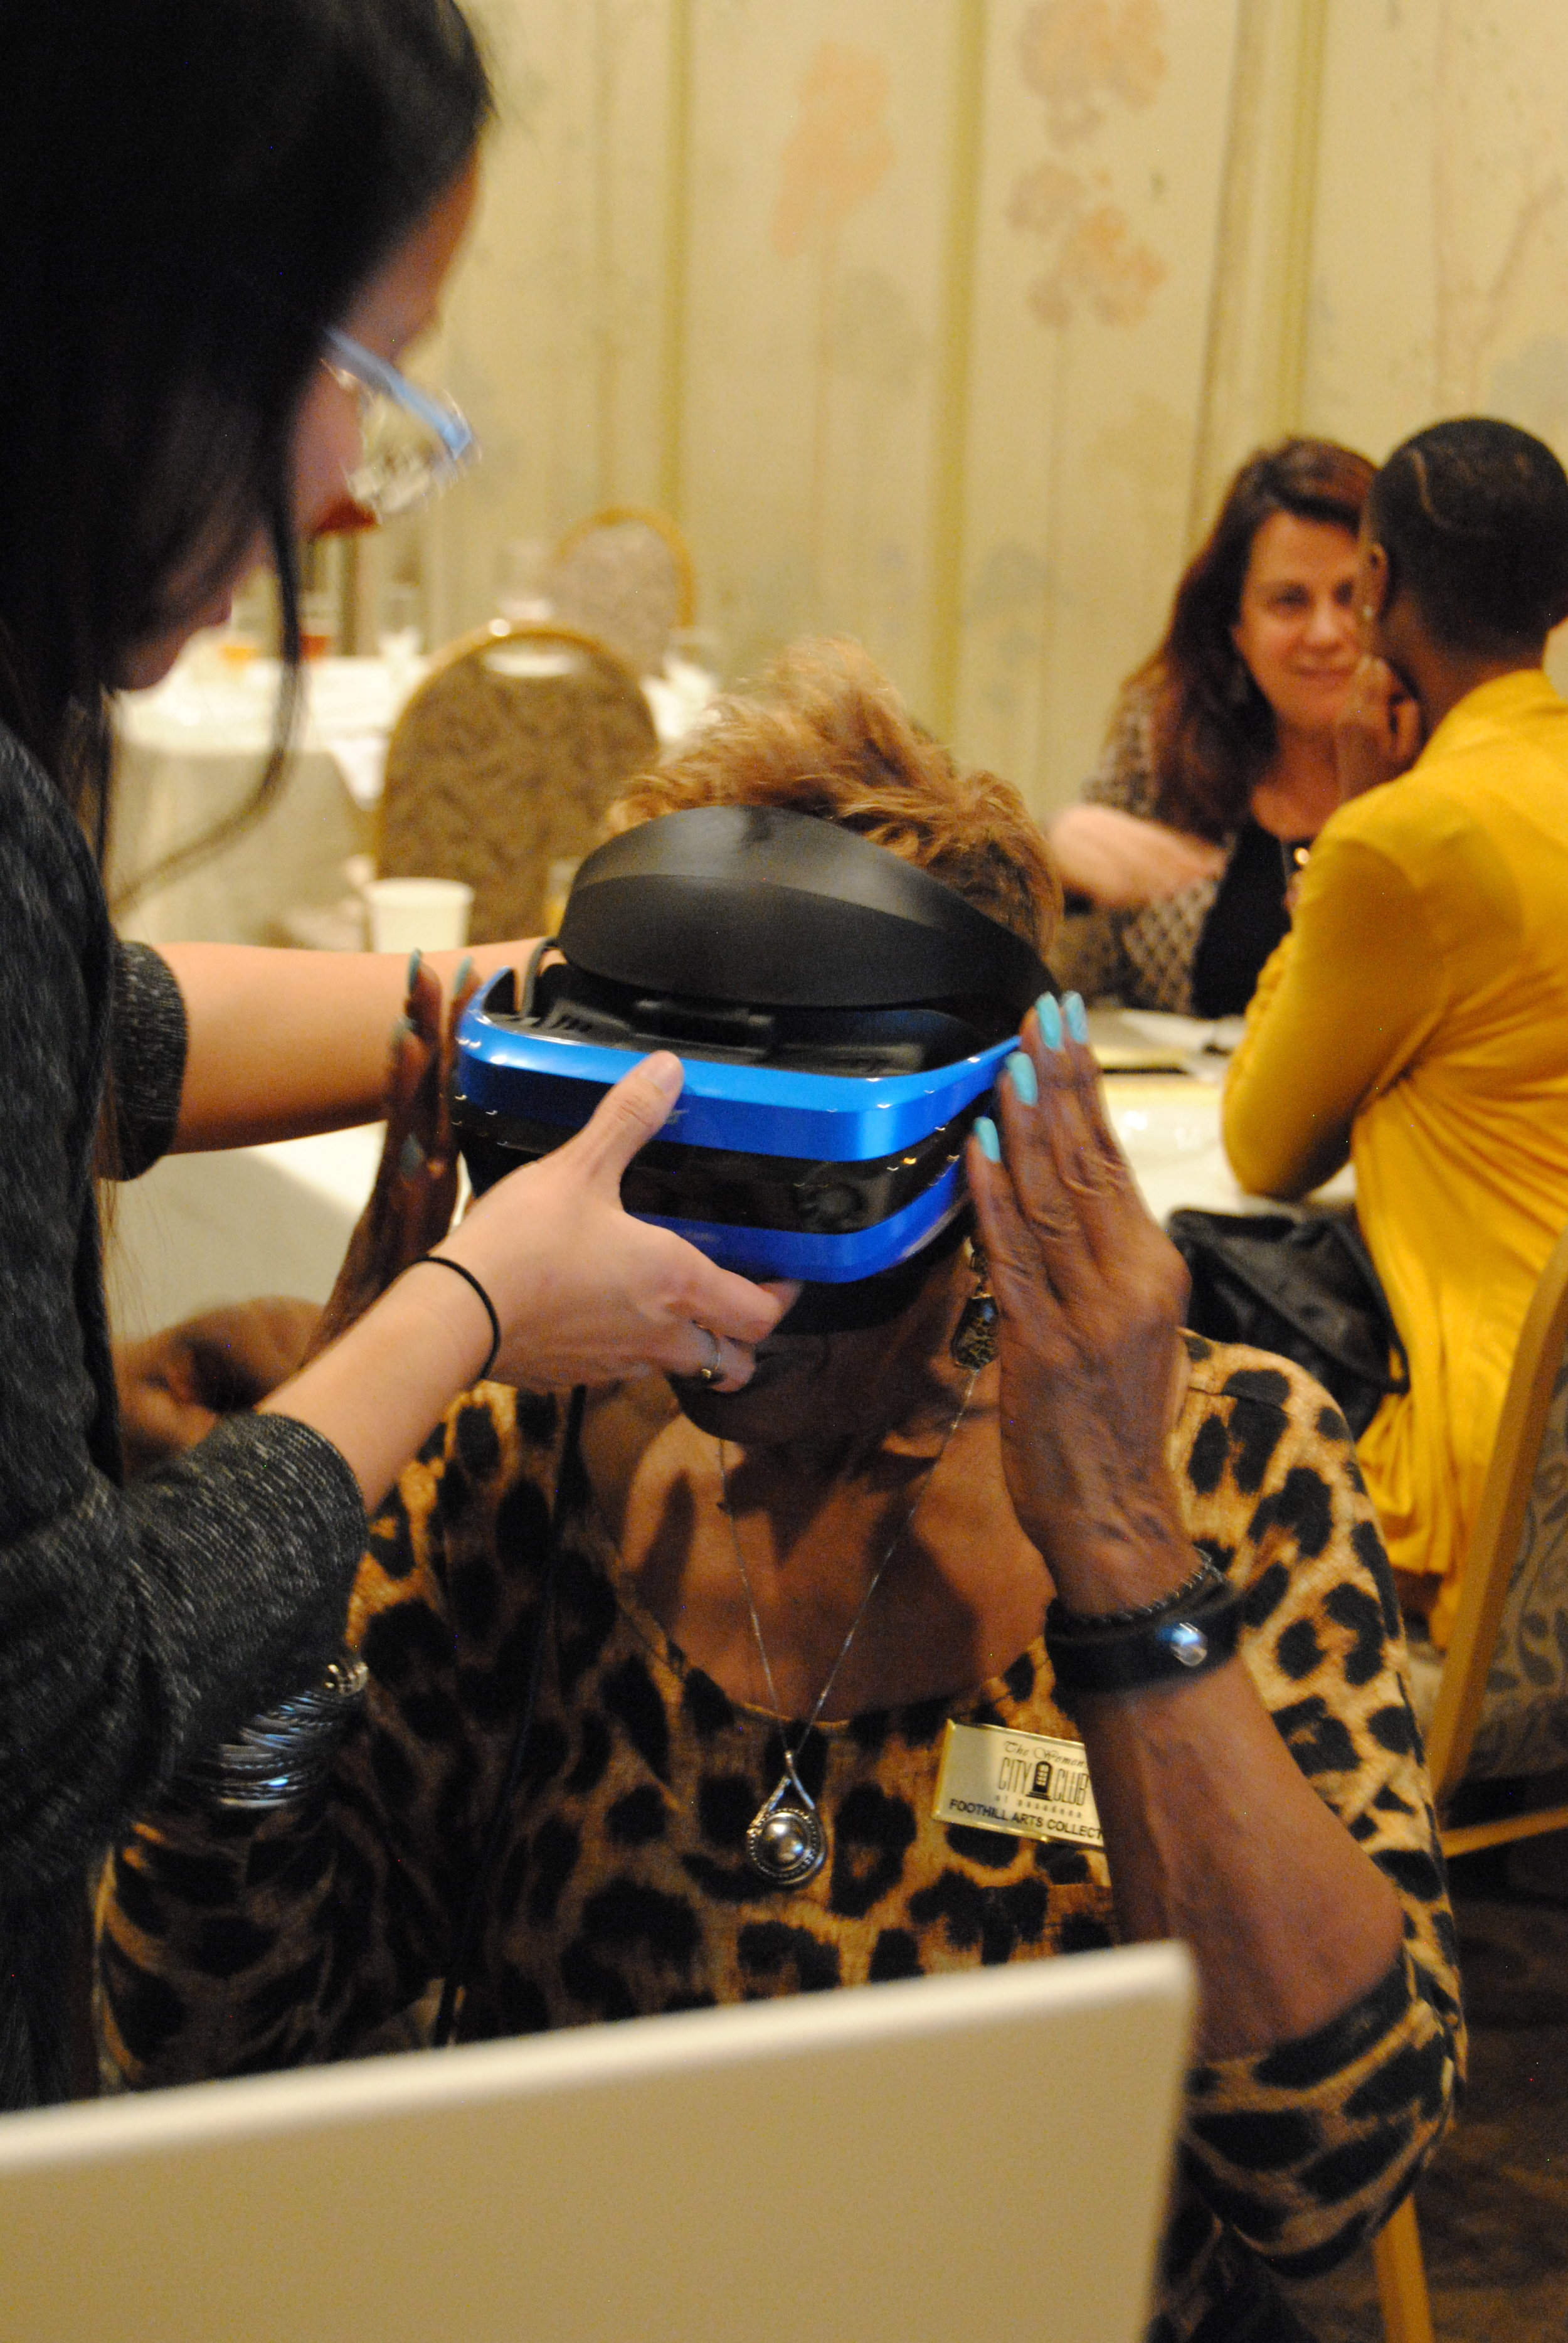 The TechDiva is fitted with a headset for the virtual reality experience